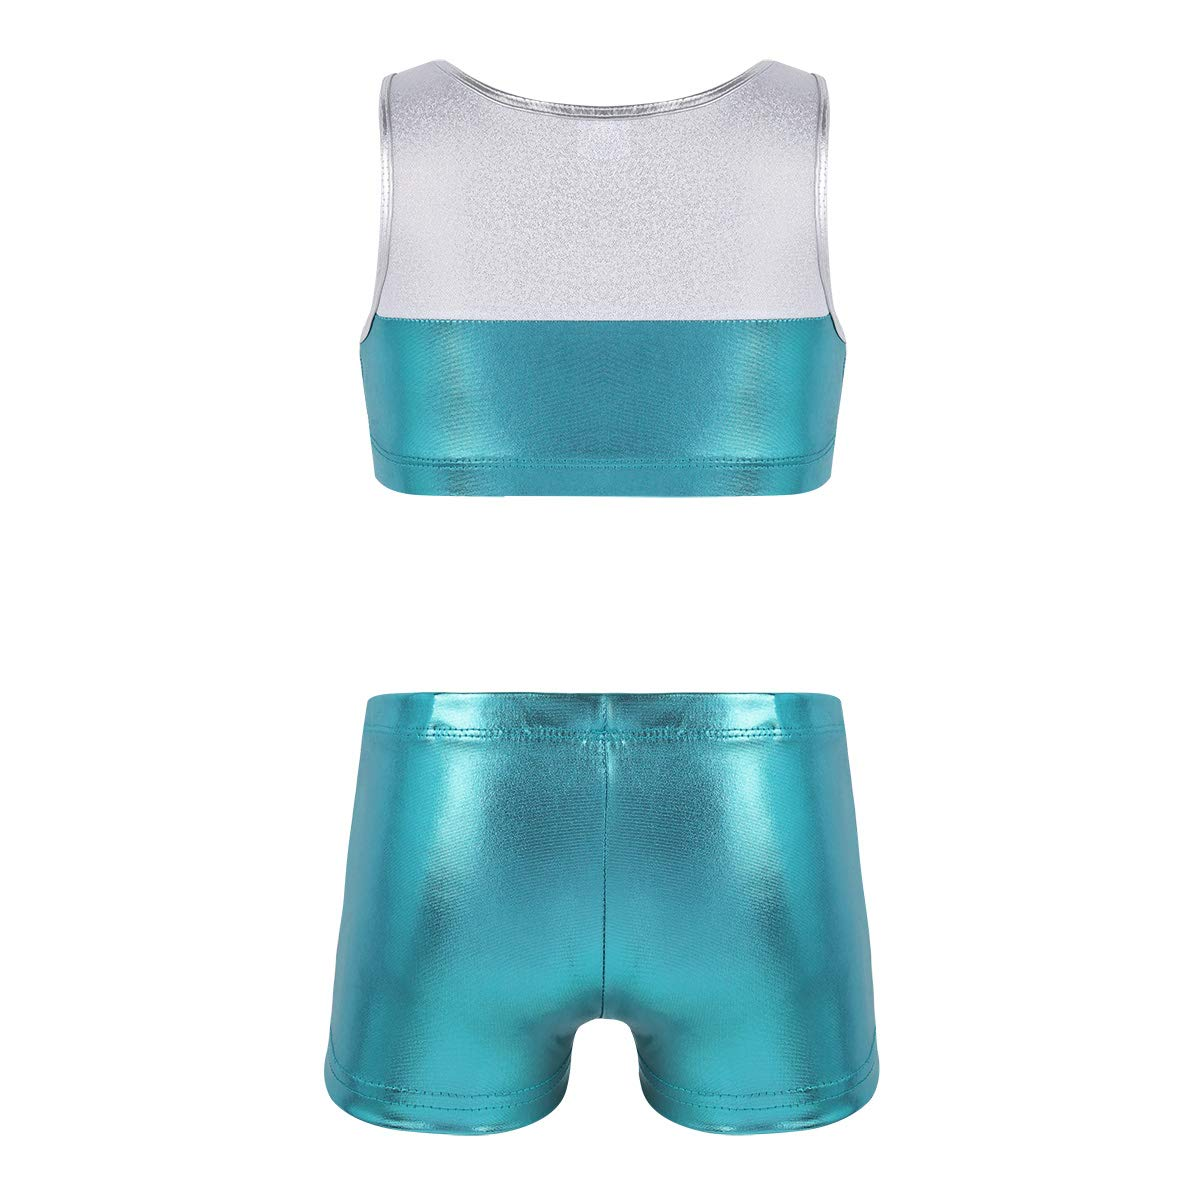 Agoky Kids Girls Top and Booty Shorts Ballet Dance Gymnastics Sports Leotard or Swimwear Swimming Costumes